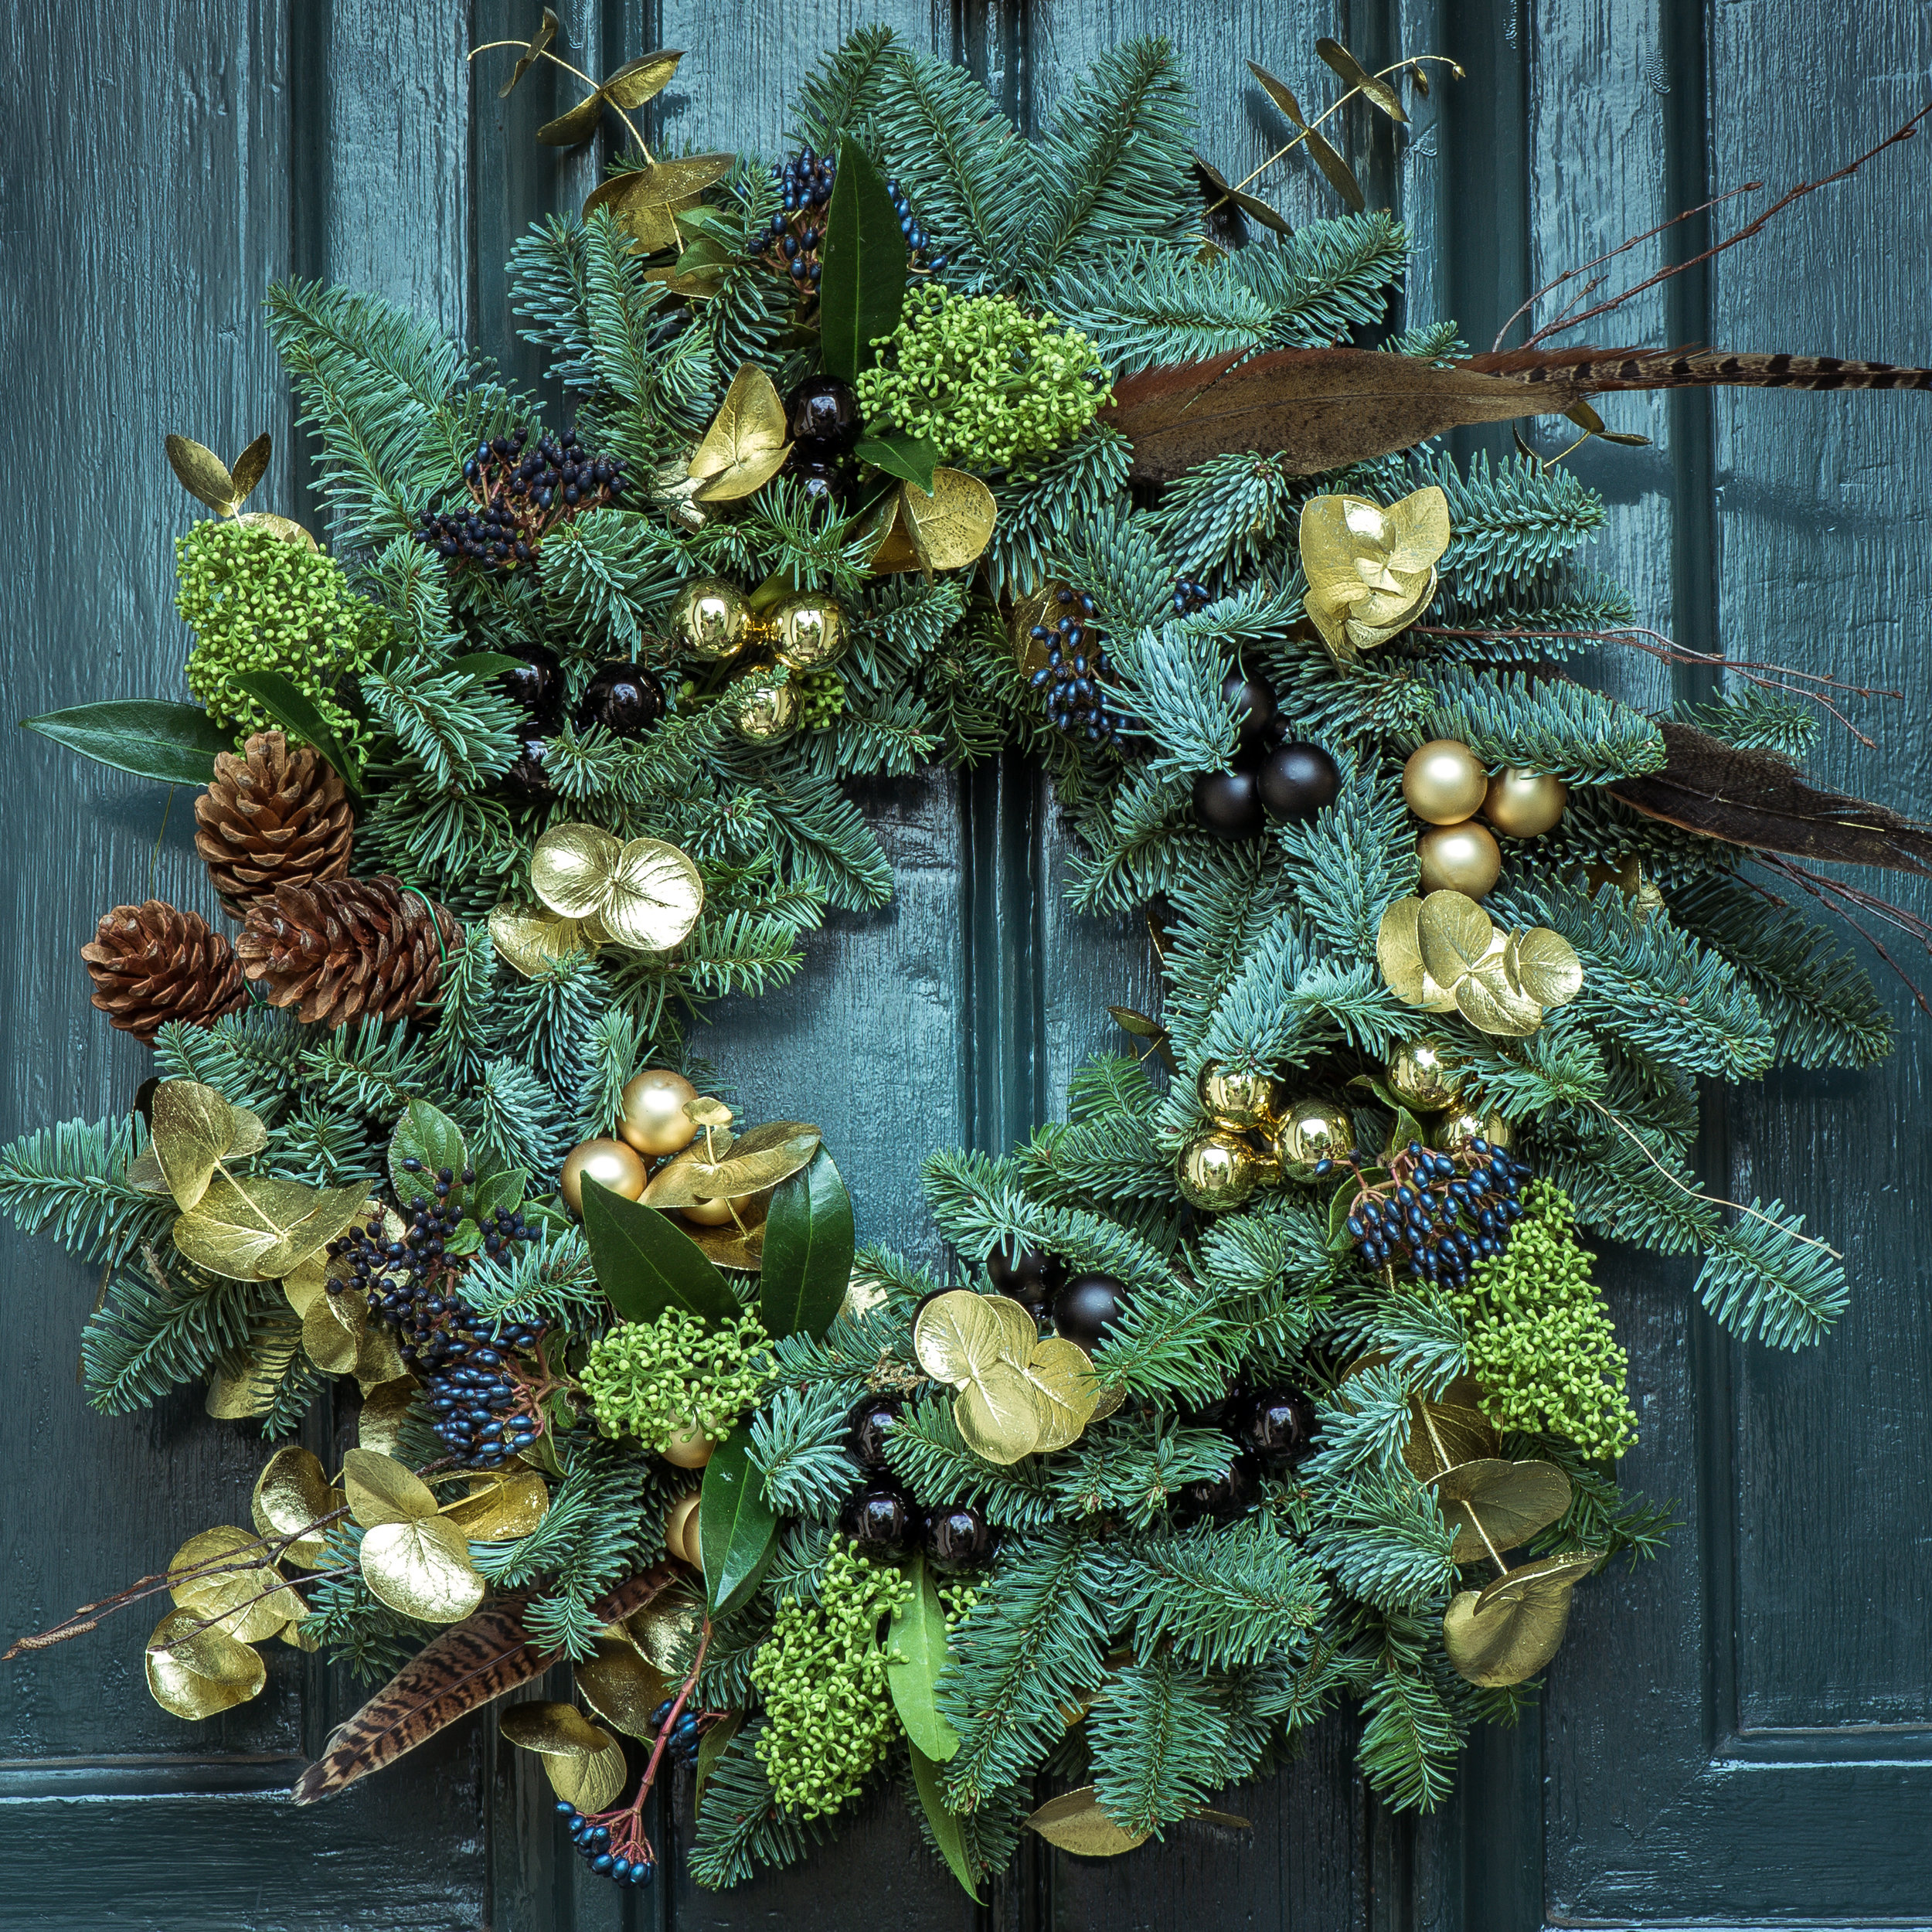 "INTRODUCING HANDMADE AT THE WEDGE - OUR WREATH ROOM IS BUZZING WITH WREATHS, SWAGS, BLANKETS AND MUCH MORE MADE FROM OUR FRESH CUT GREENS. IT DOESN'T GET FRESHER THAN ""HANDMADE AT THE WEDGE!'"""